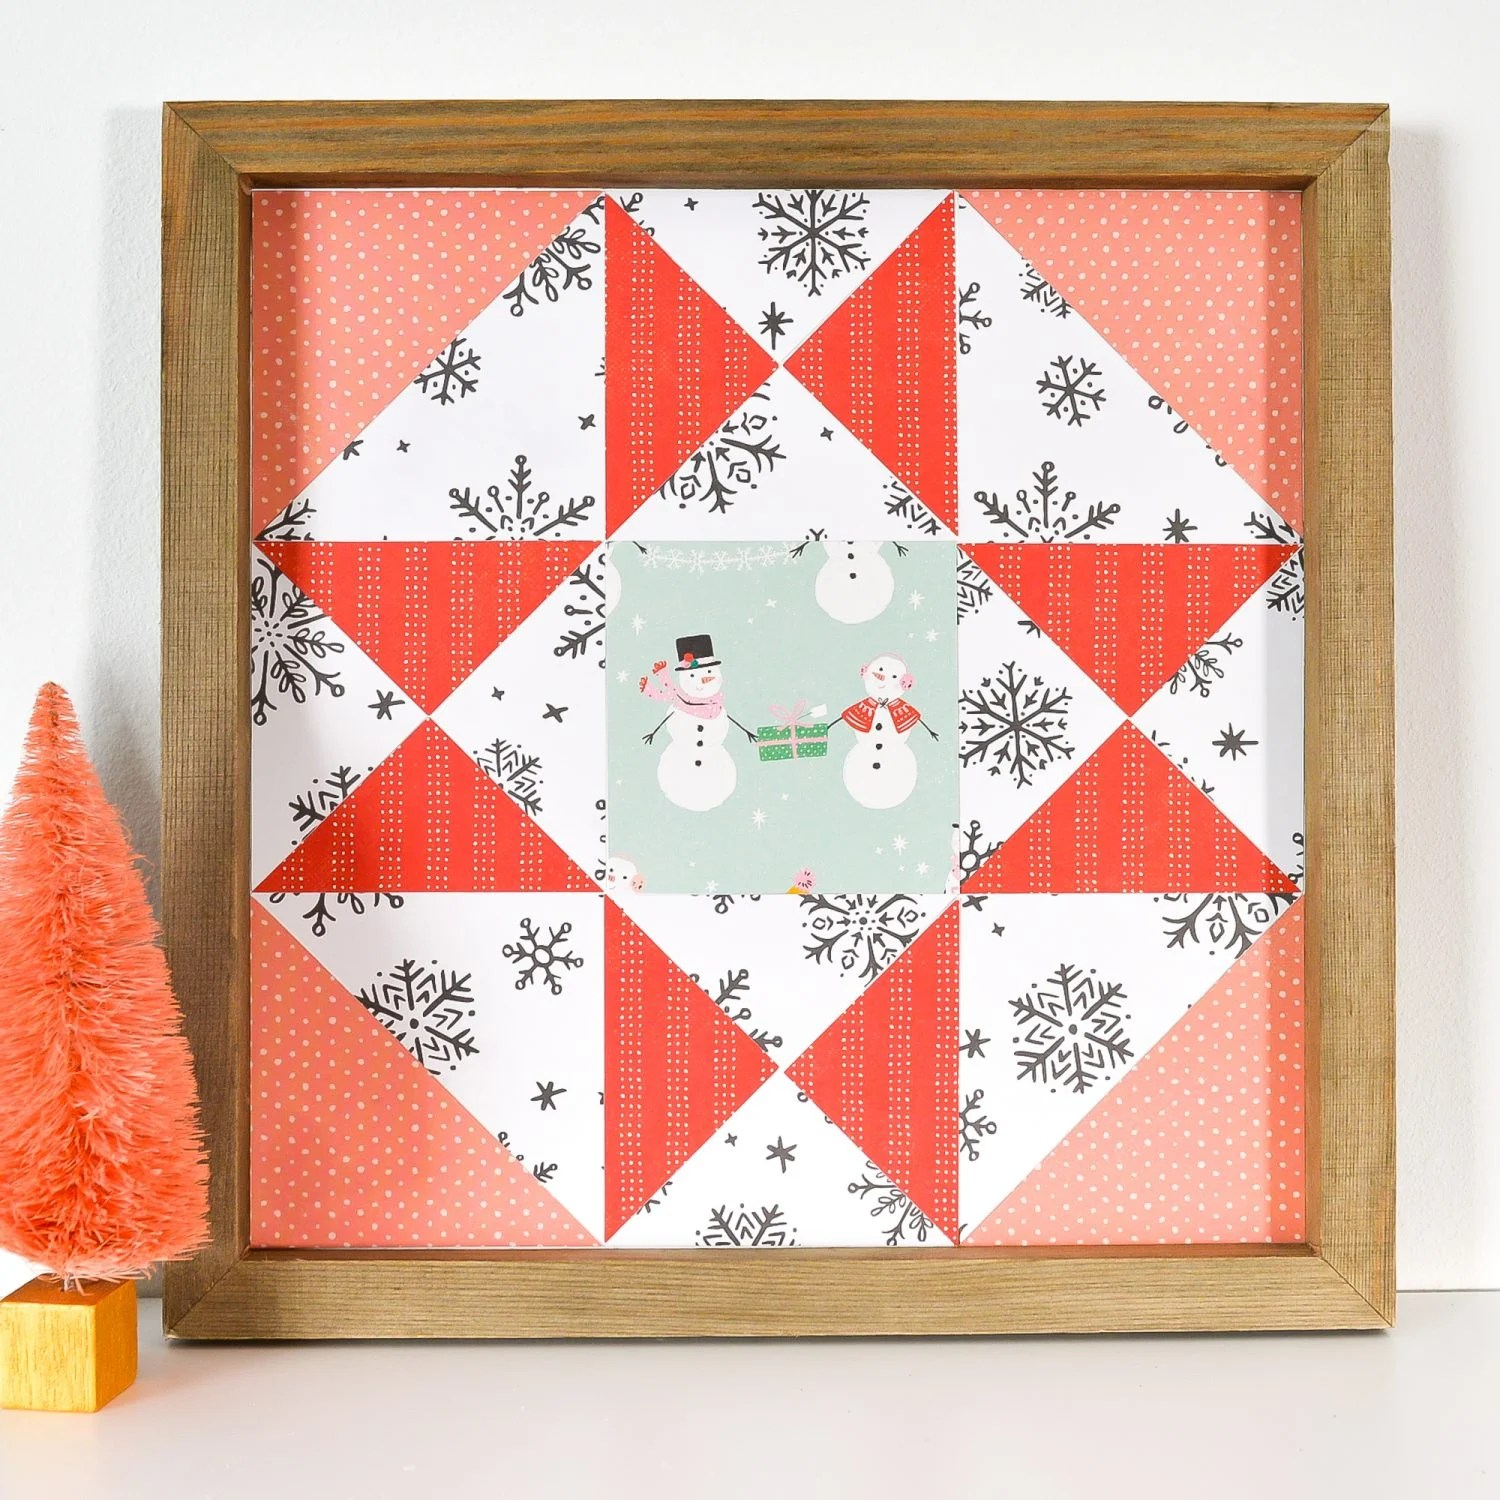 Christmas Paper Quilt Block on shelf with faux tree decor